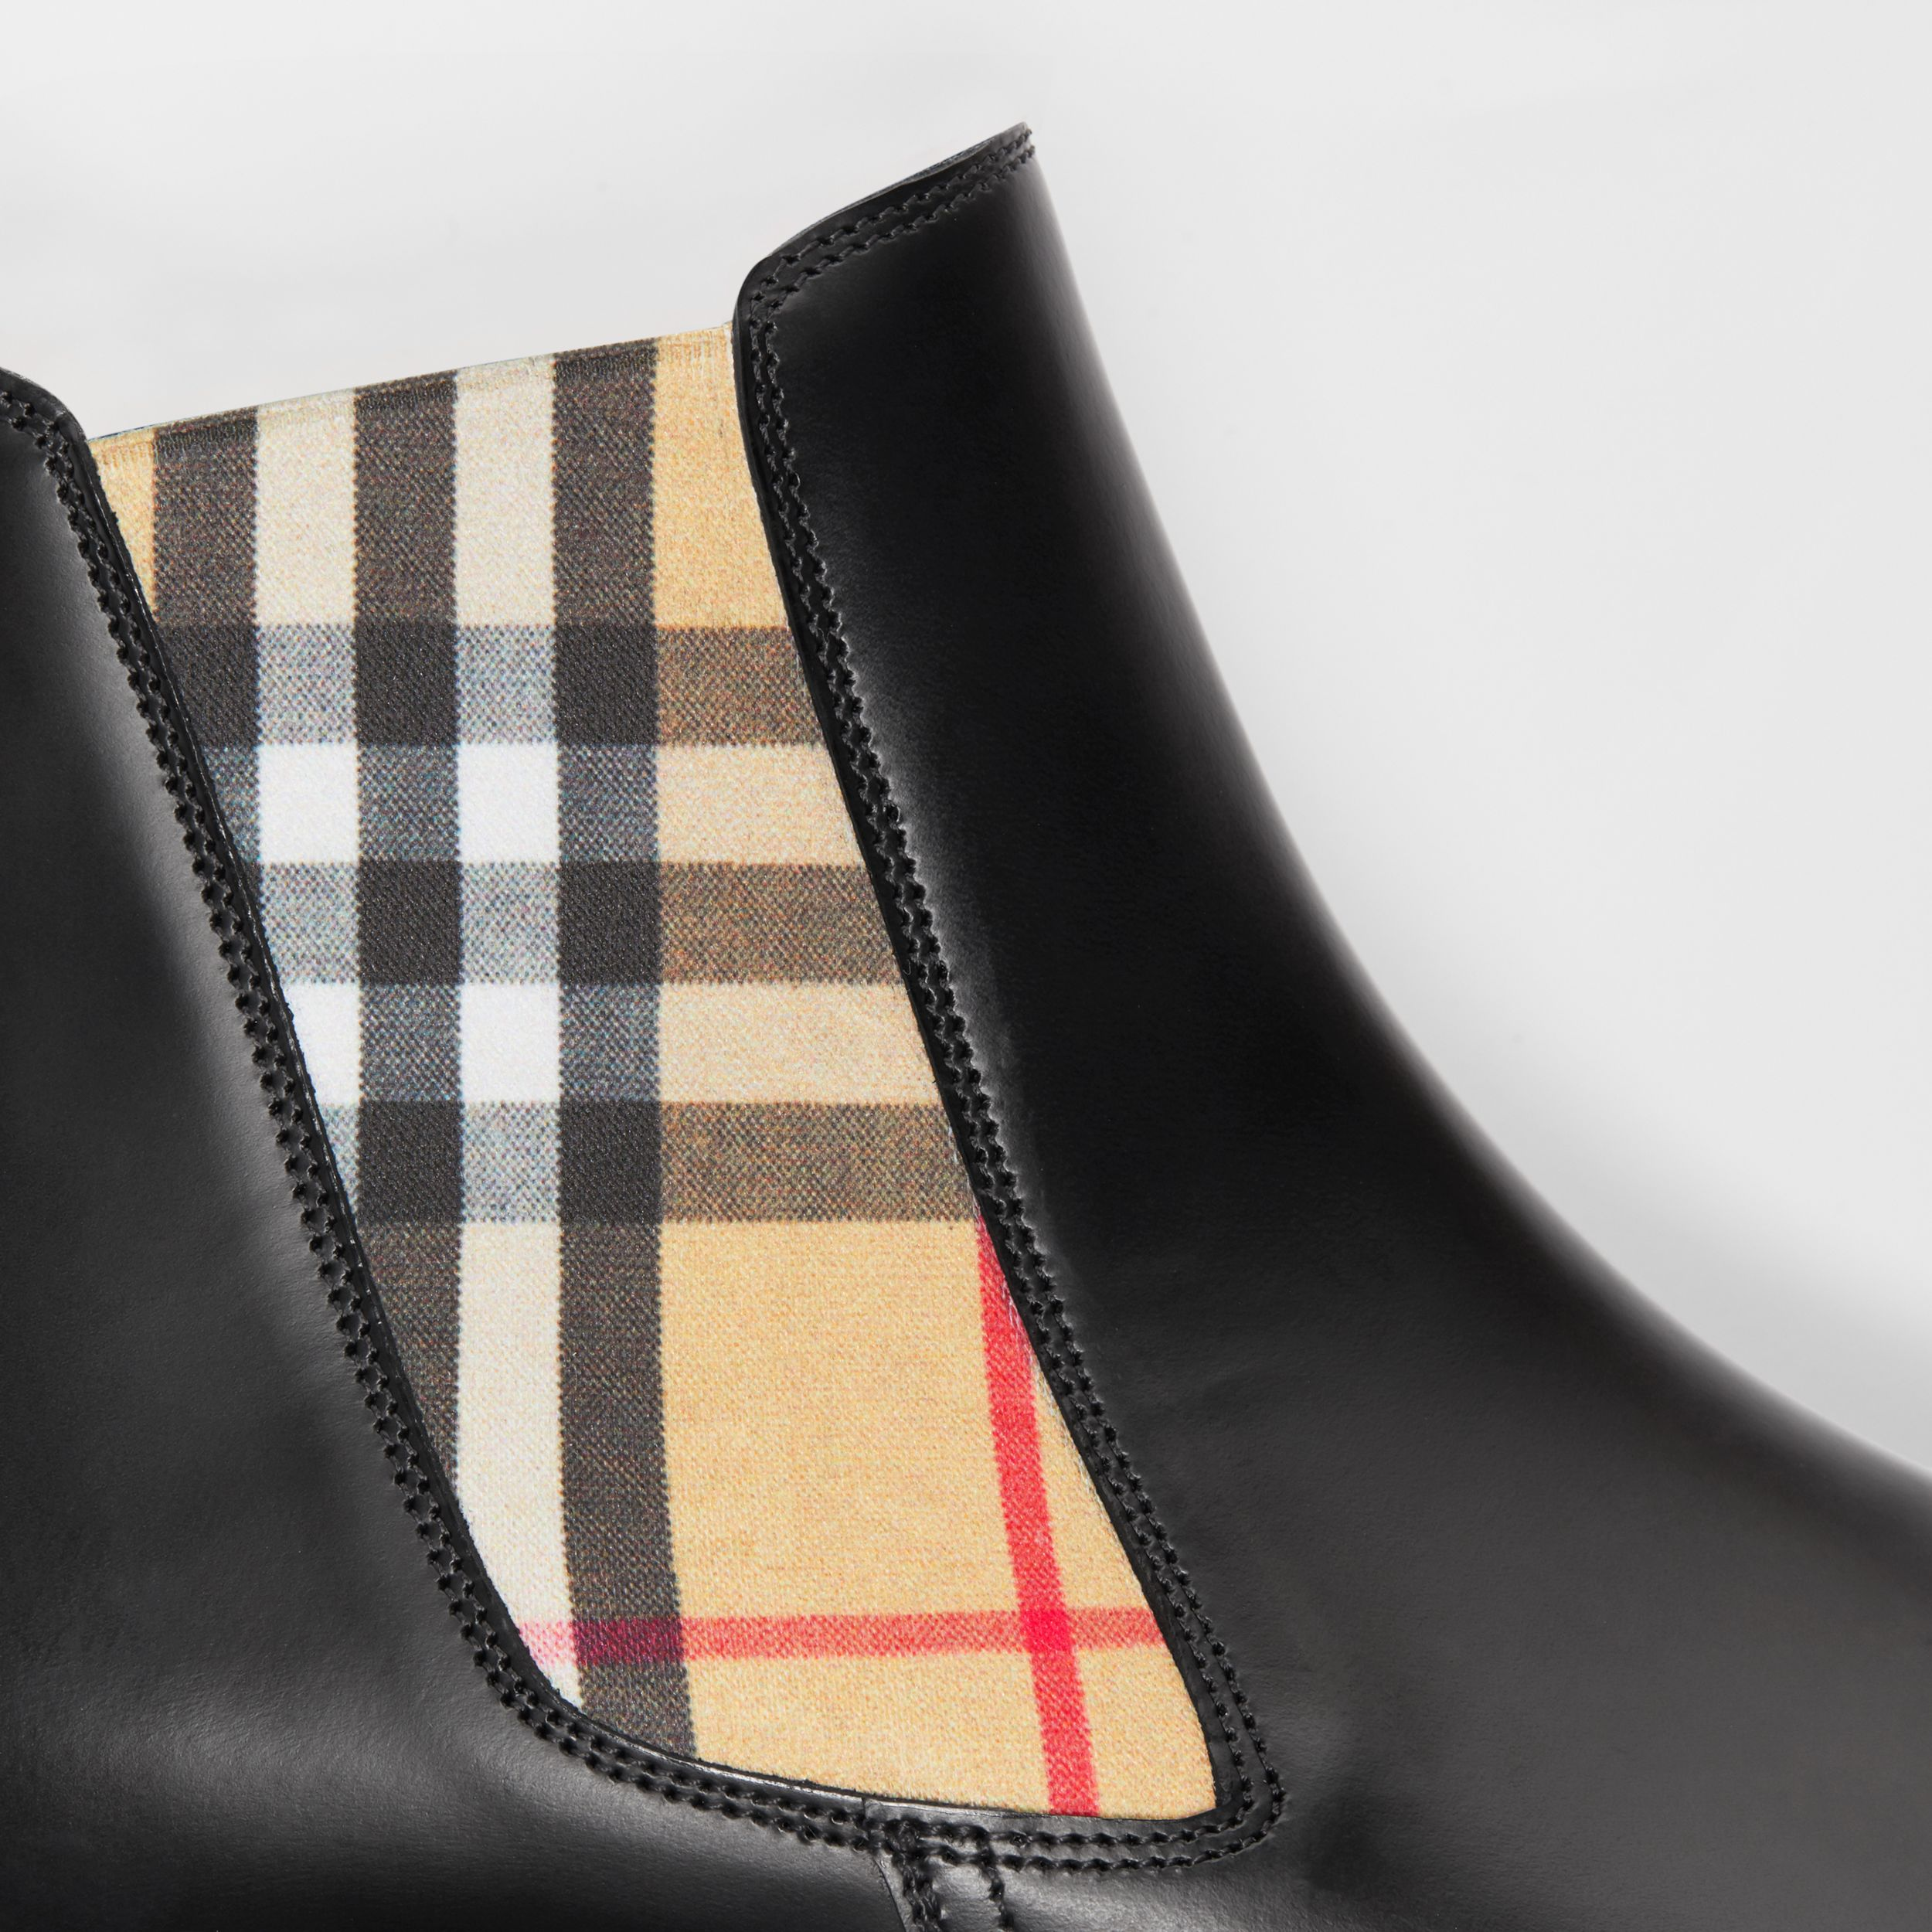 Vintage Check Detail Leather Chelsea Boots in Black - Women | Burberry United Kingdom - 2